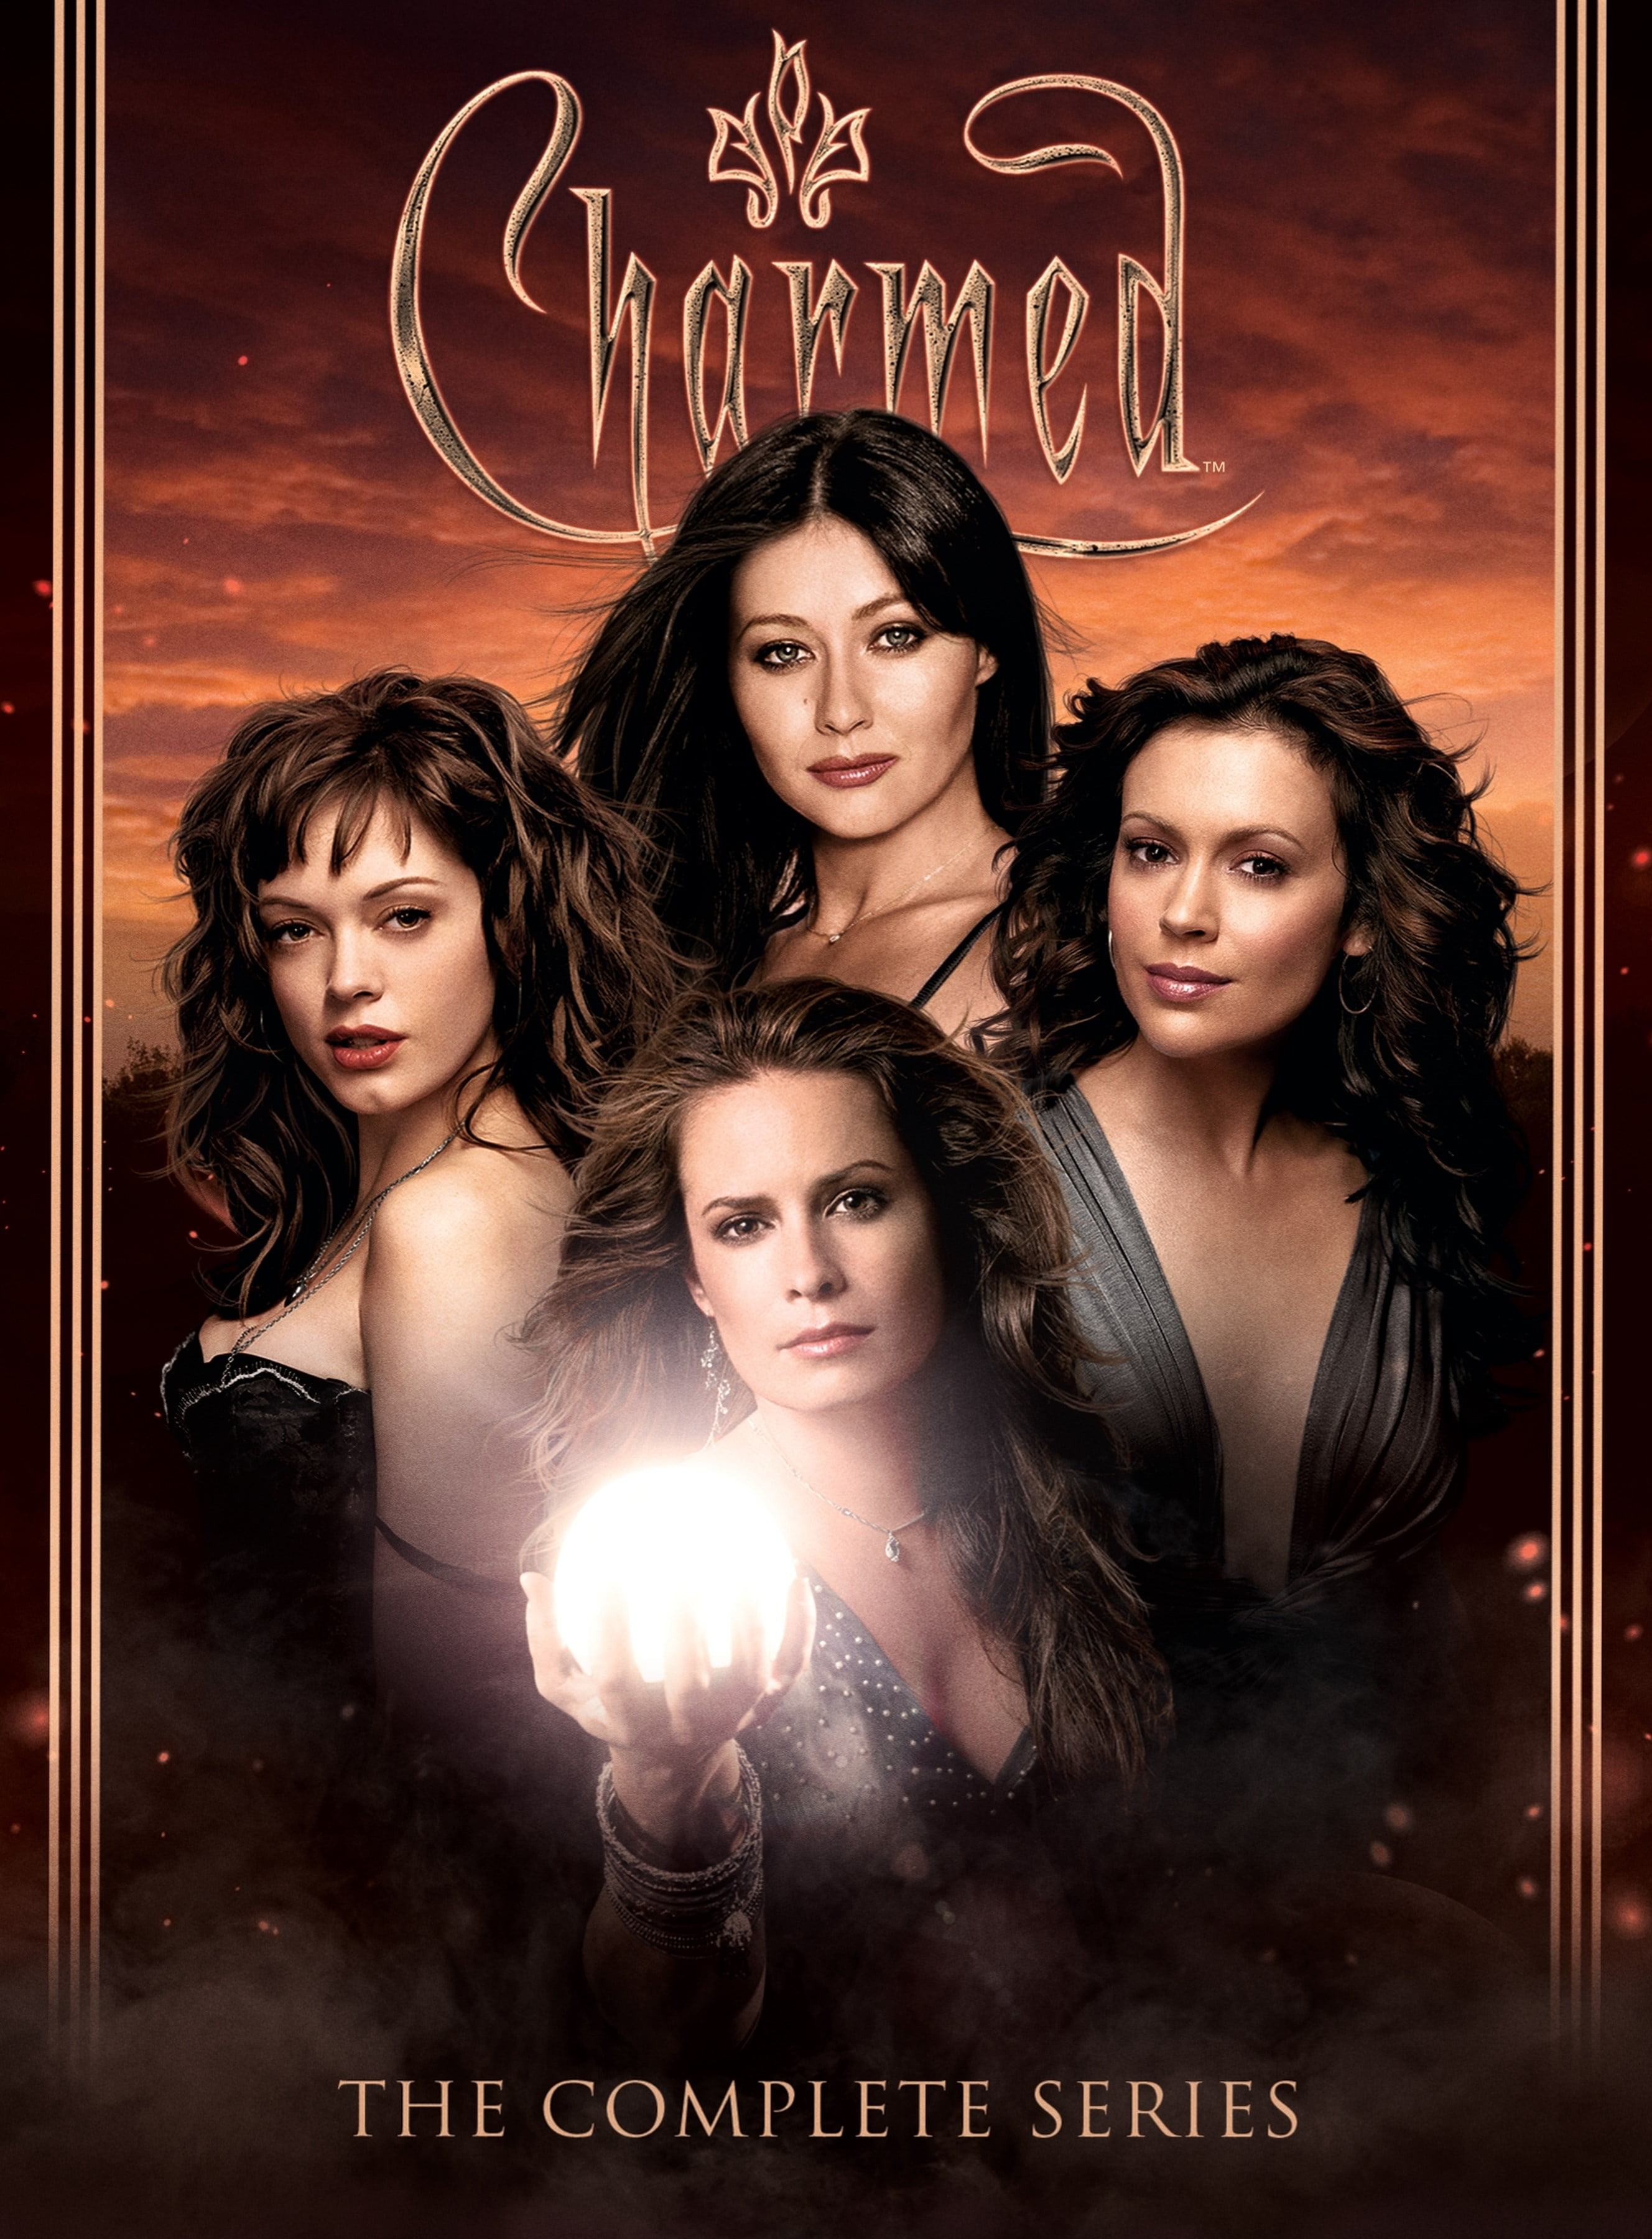 Charmed: The Complete Series (DVD) by Ingram Entertainment